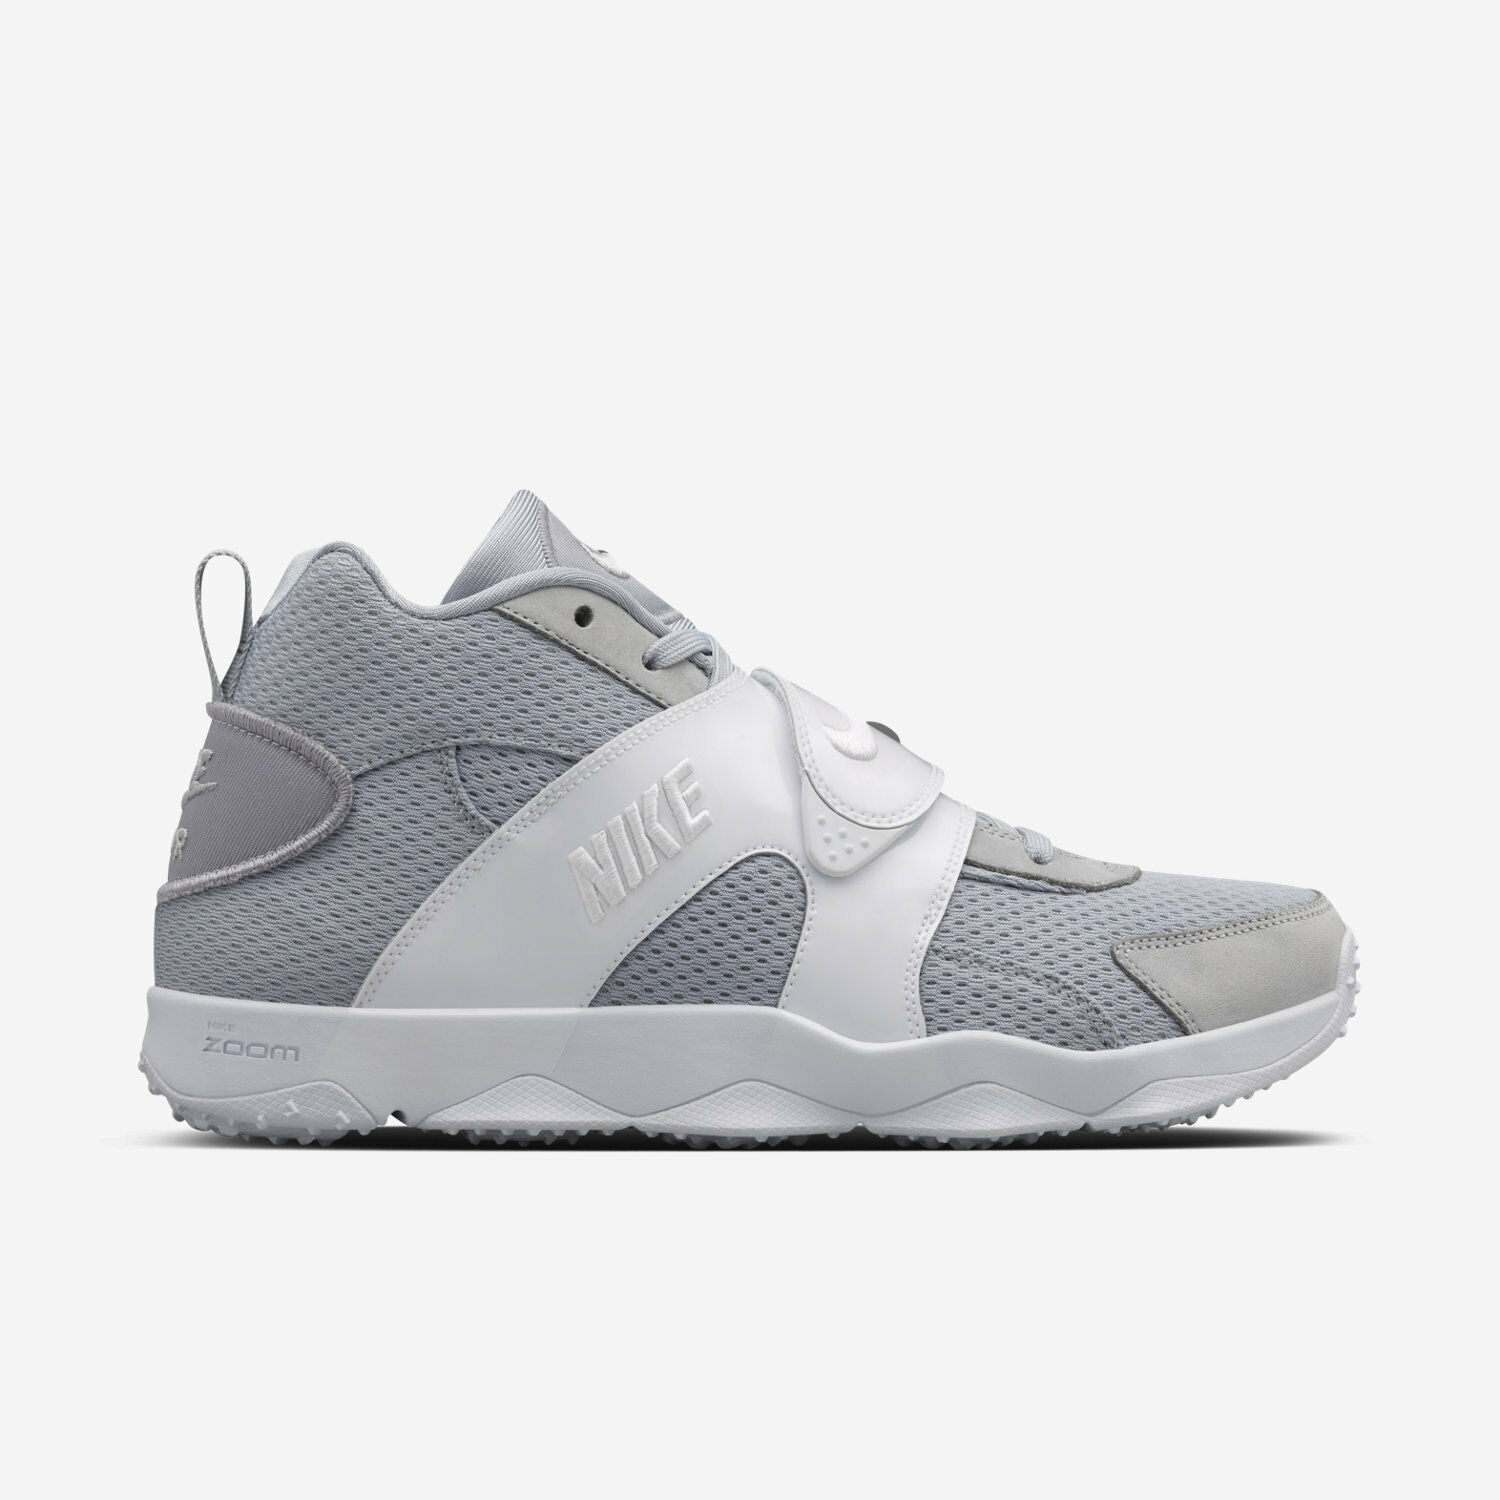 Men's Nike Air Zoom Veer Sz 10.5 SHIPPING Wolf Grey/White 844675-011 FREE SHIPPING 10.5 fad4ad